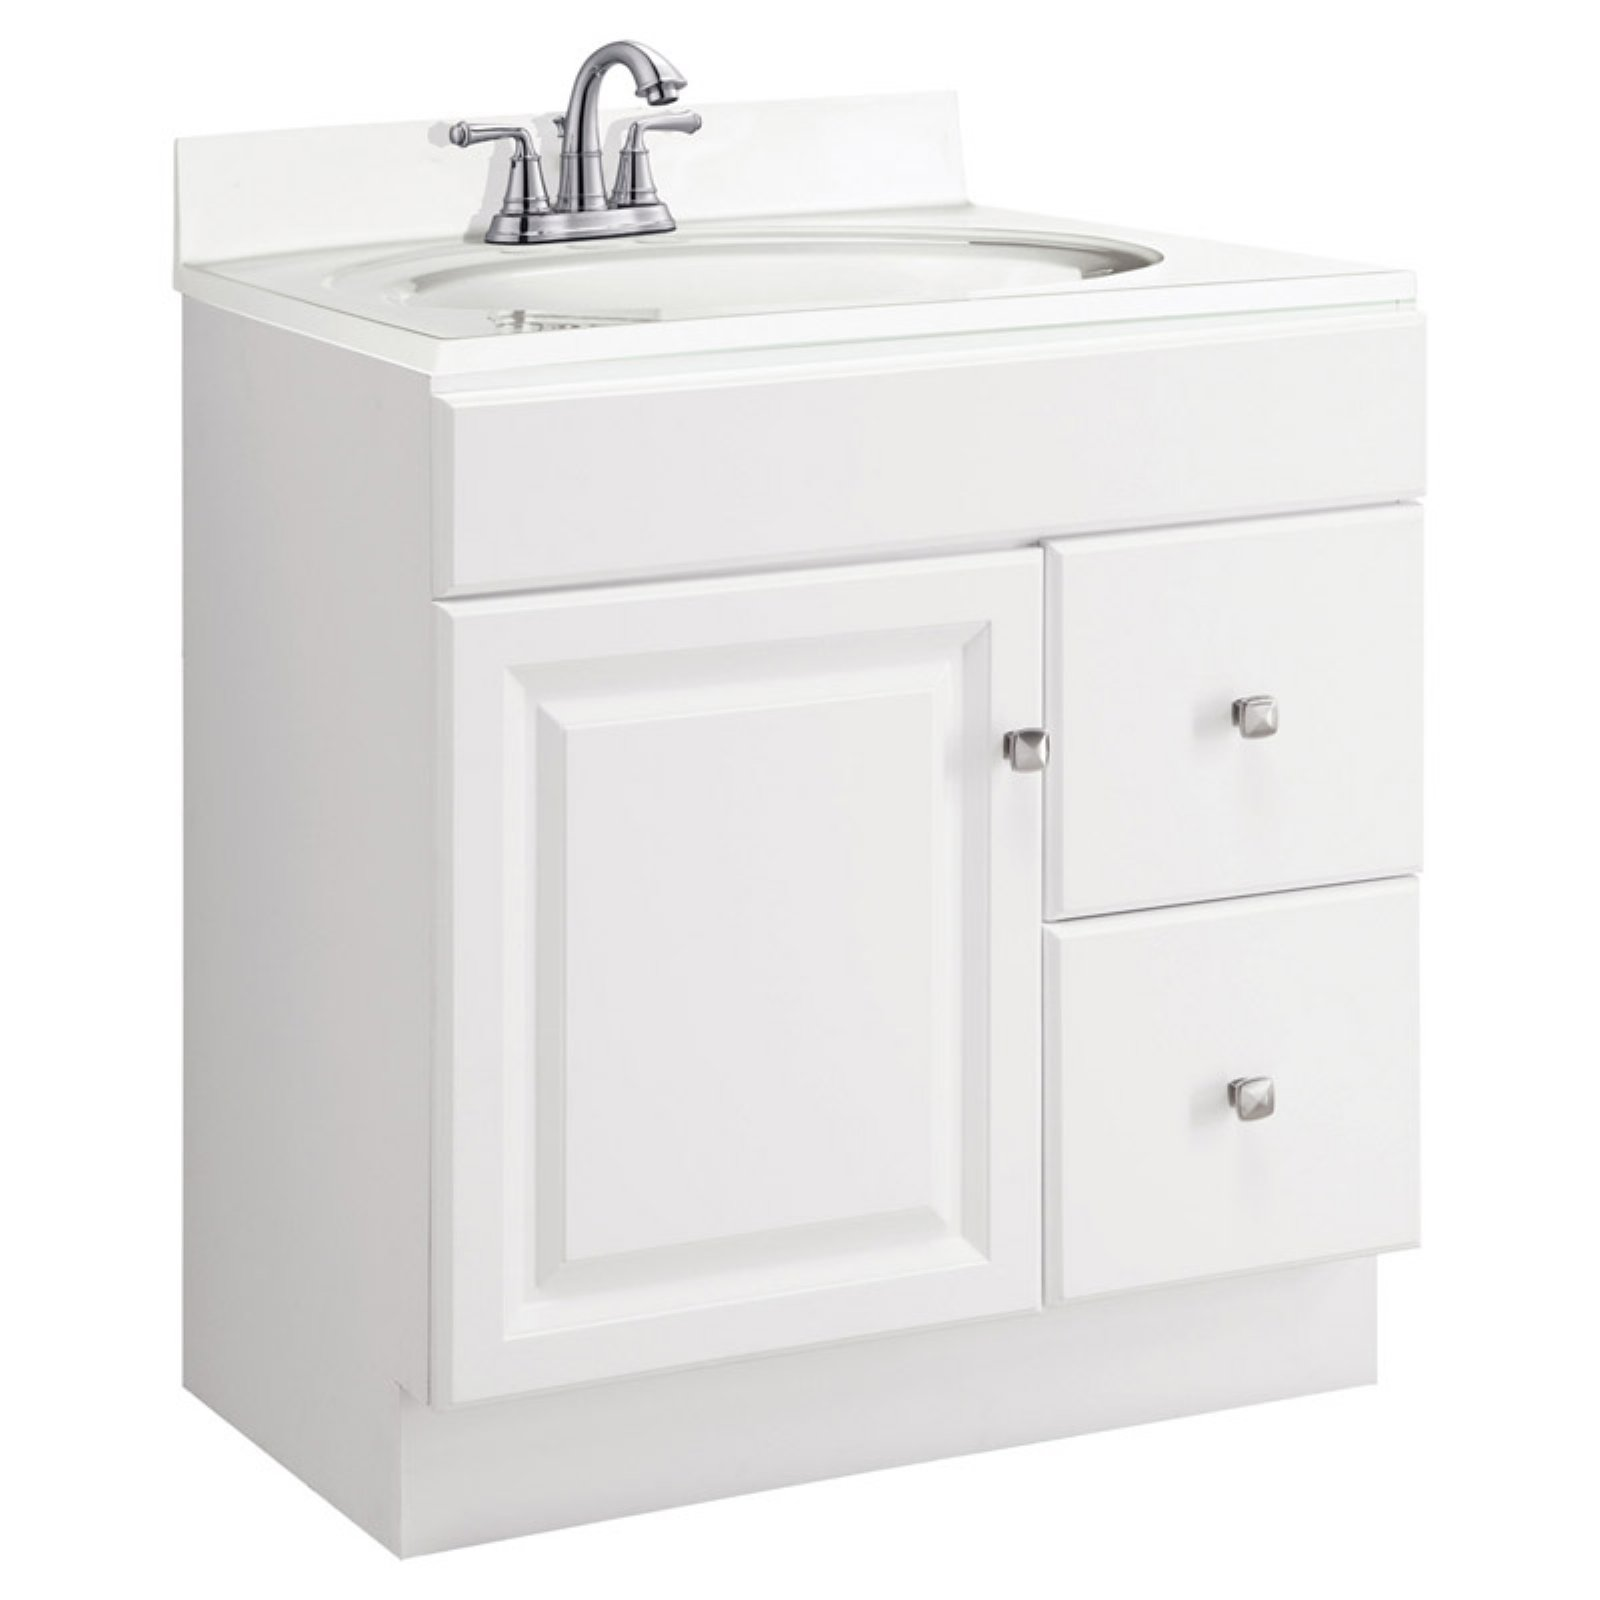 Design House 545079 Wyndham White Semi Gloss Vanity Cabinet With 1 Door And  2 Drawers